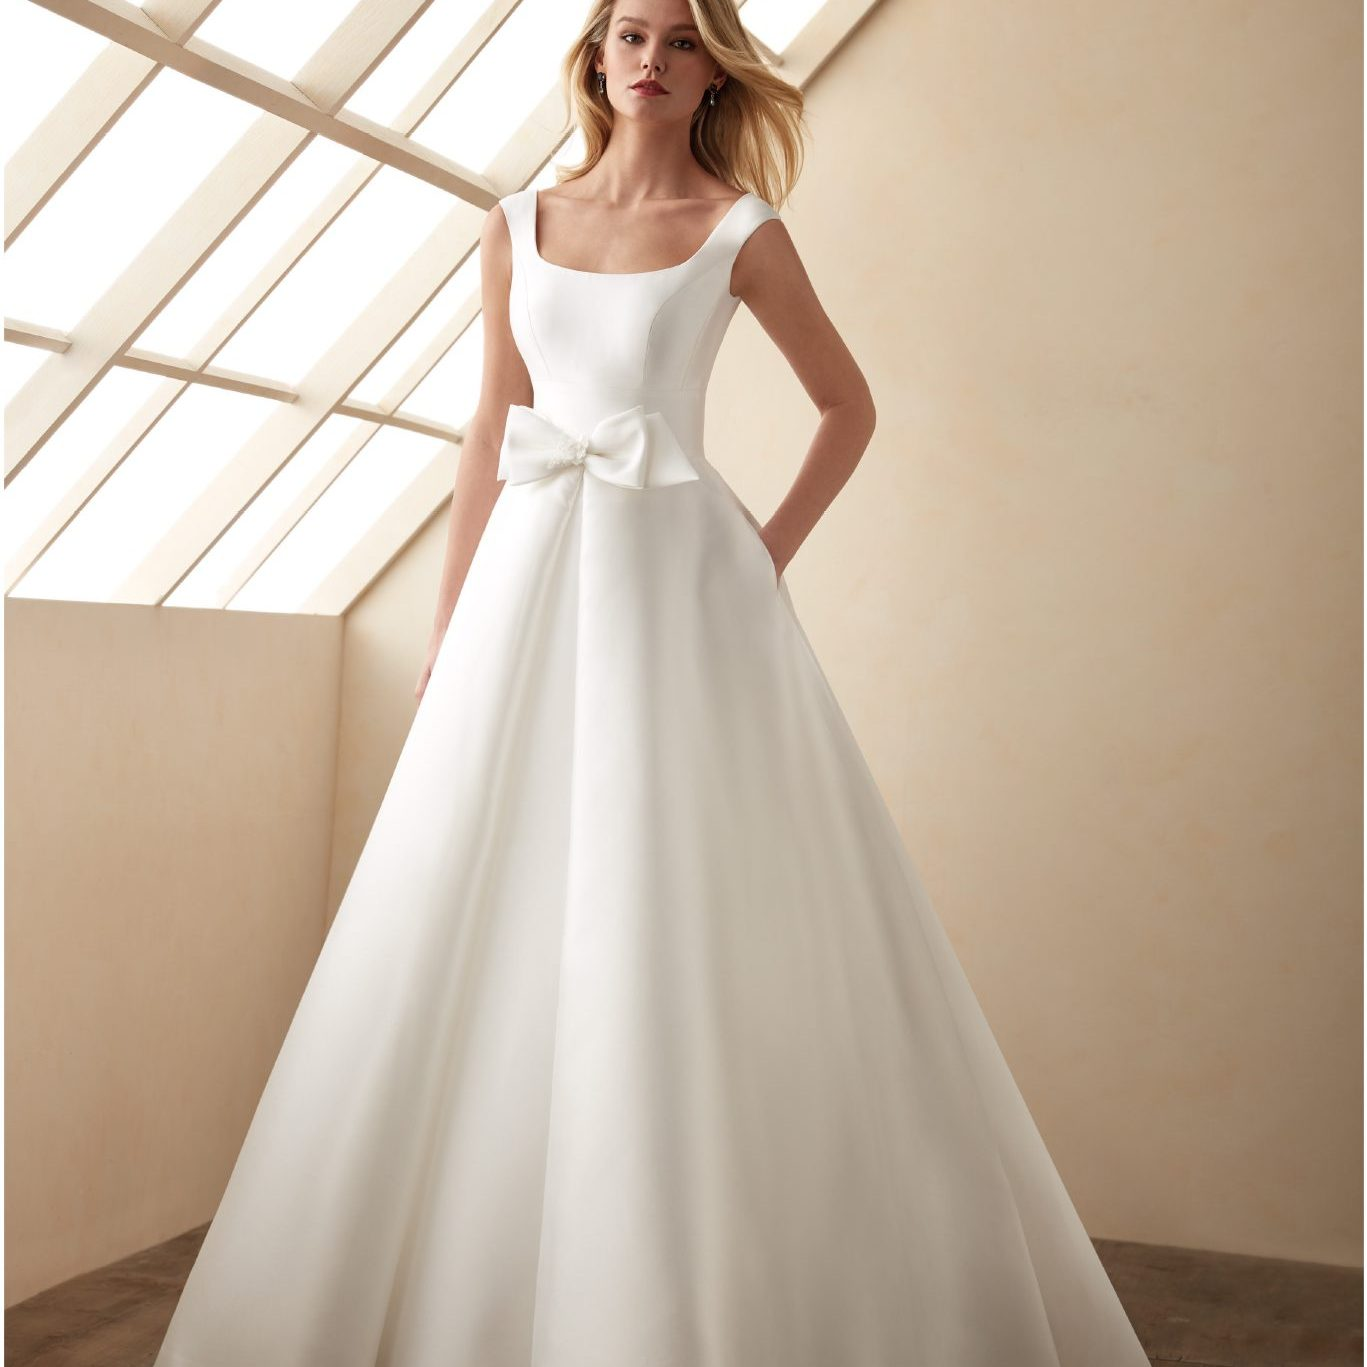 Wedding dress by Valerio Luna for Higar Novias at Perfect Day Bridal.